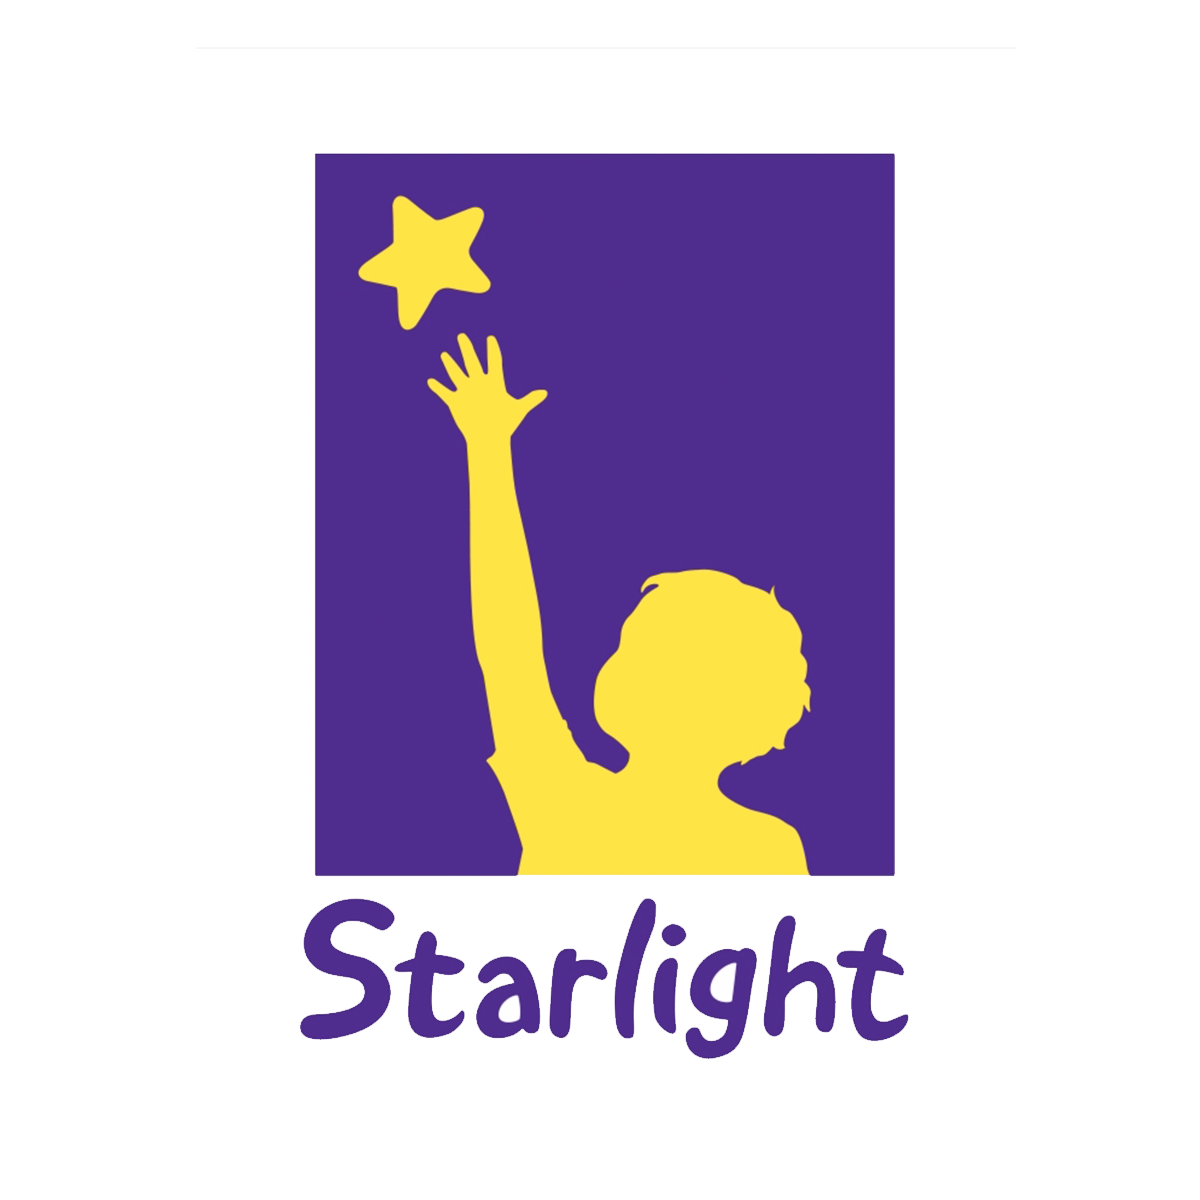 Starlight | Executive Coaching Sydney | the human enteprise